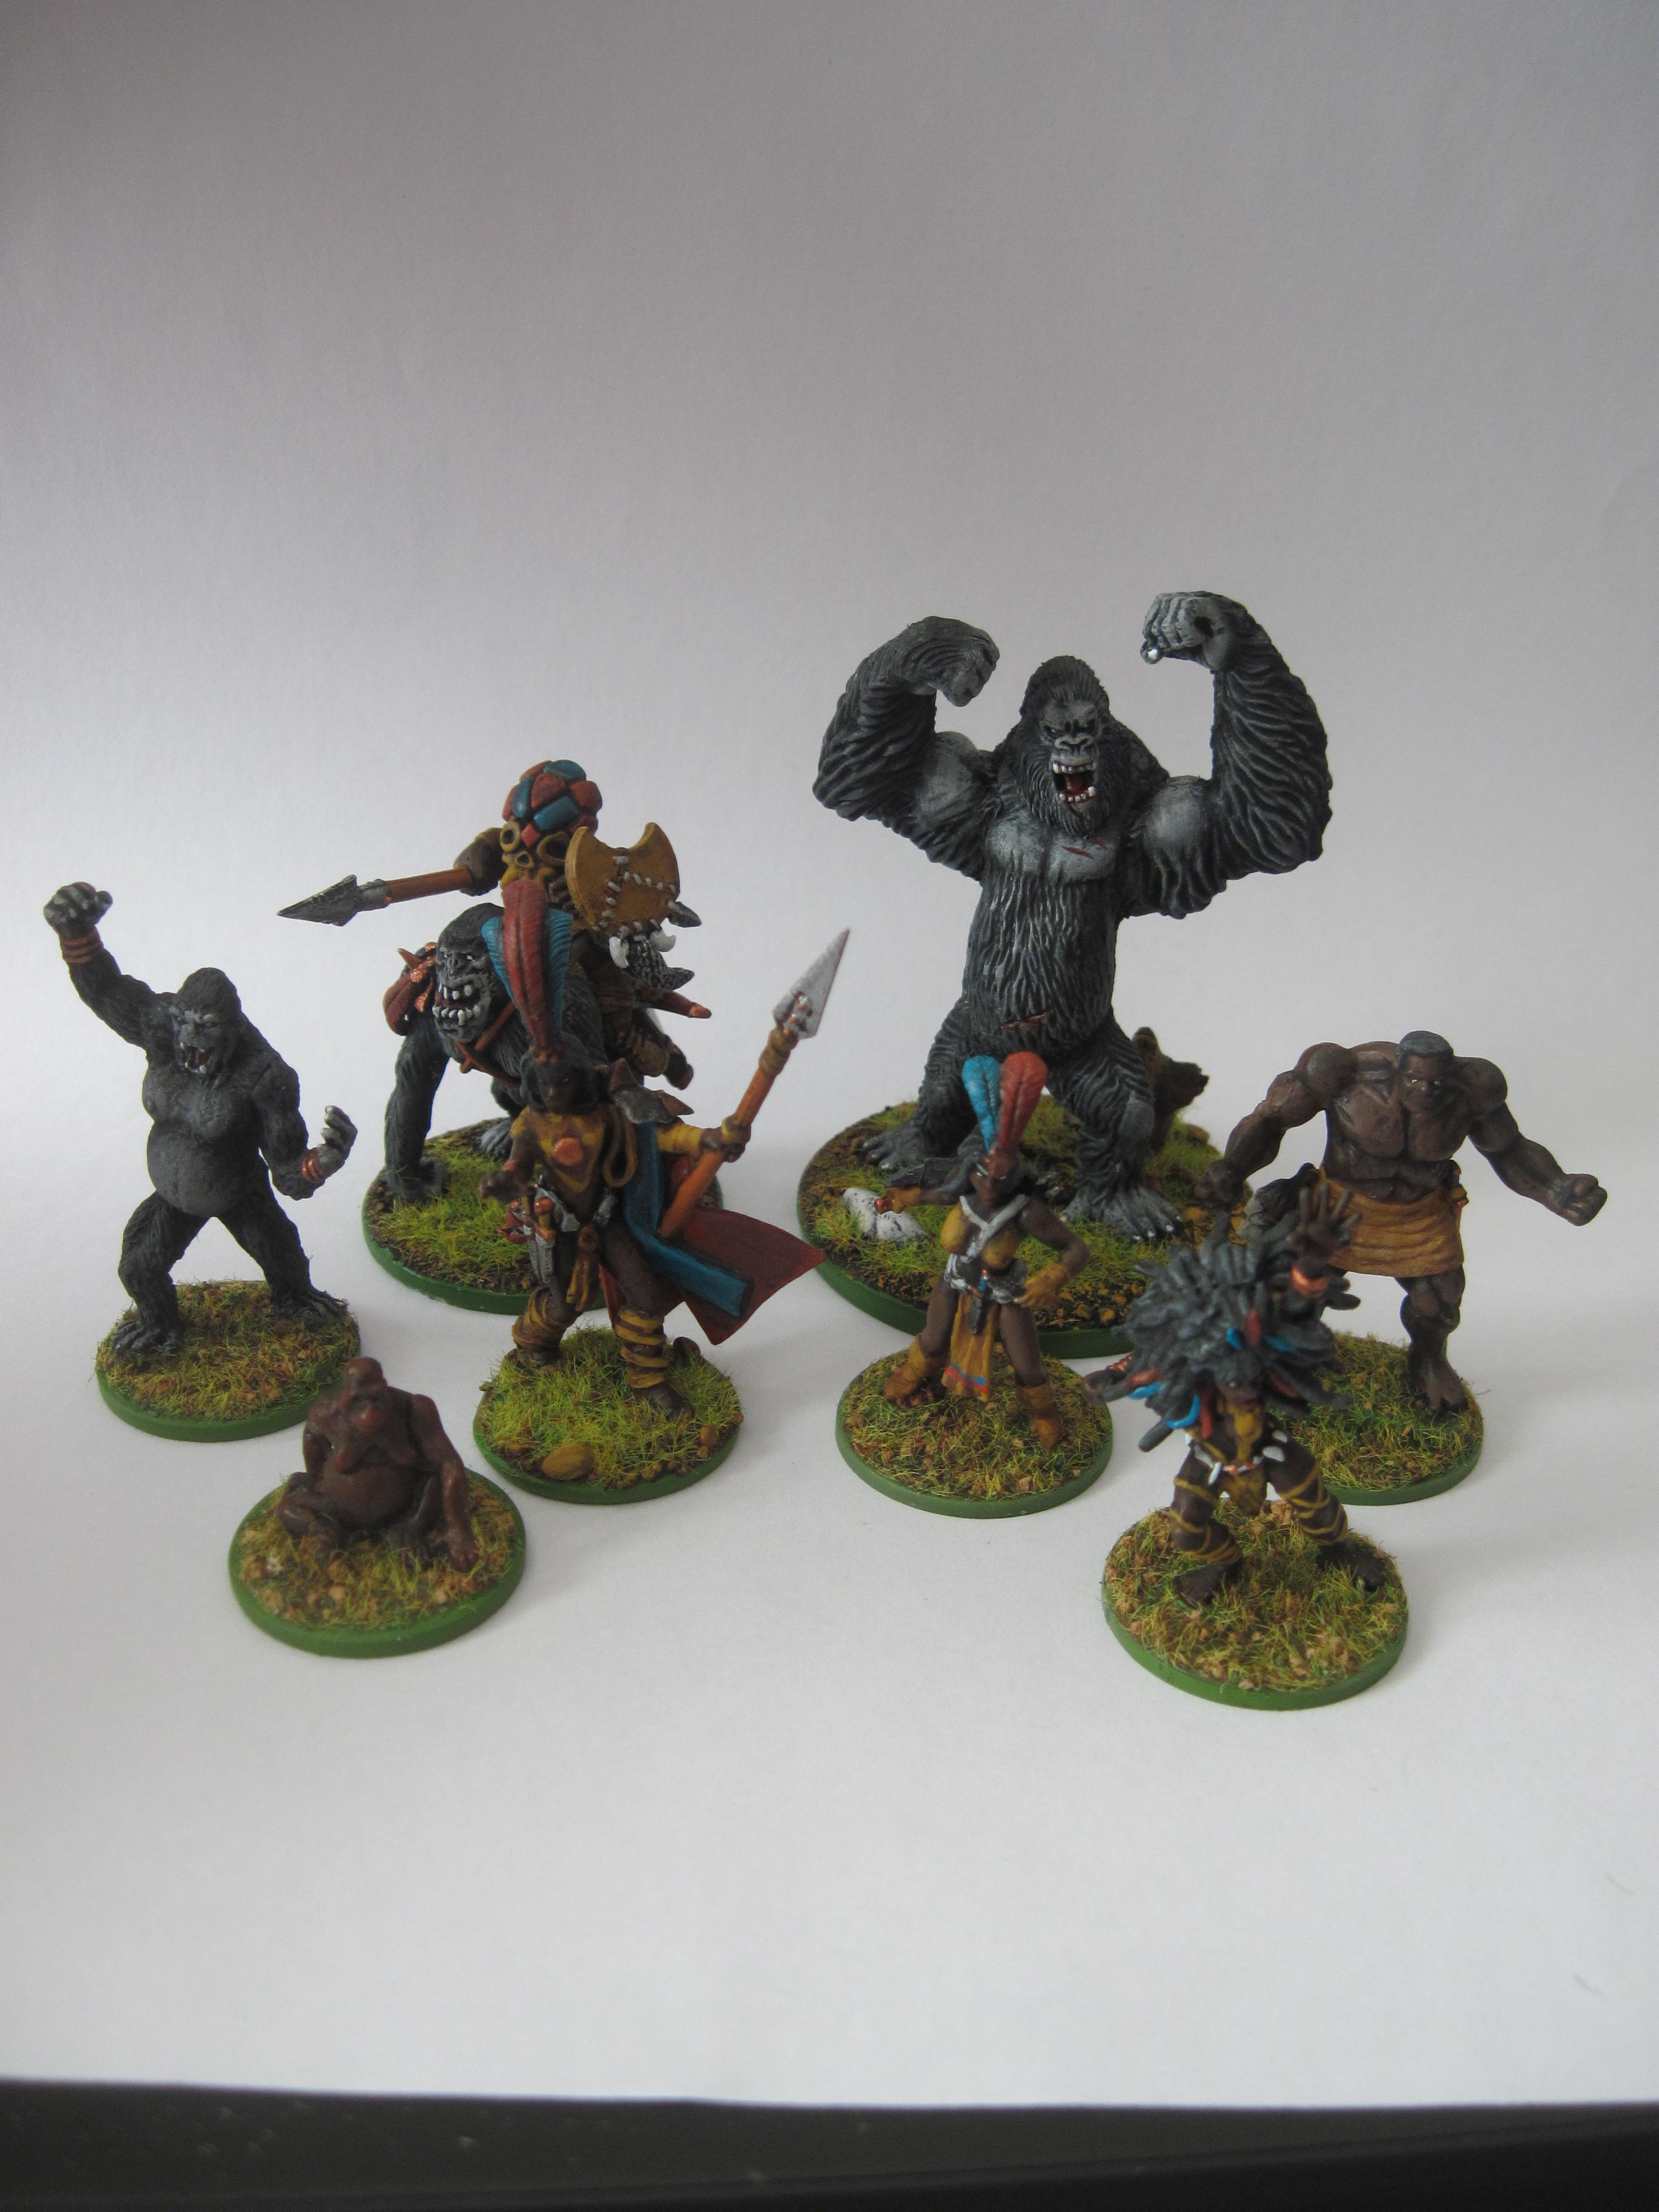 Amazon, Conversion, Goblins, Gorilla, Heroclix, Jungle, Pygmy, Toy